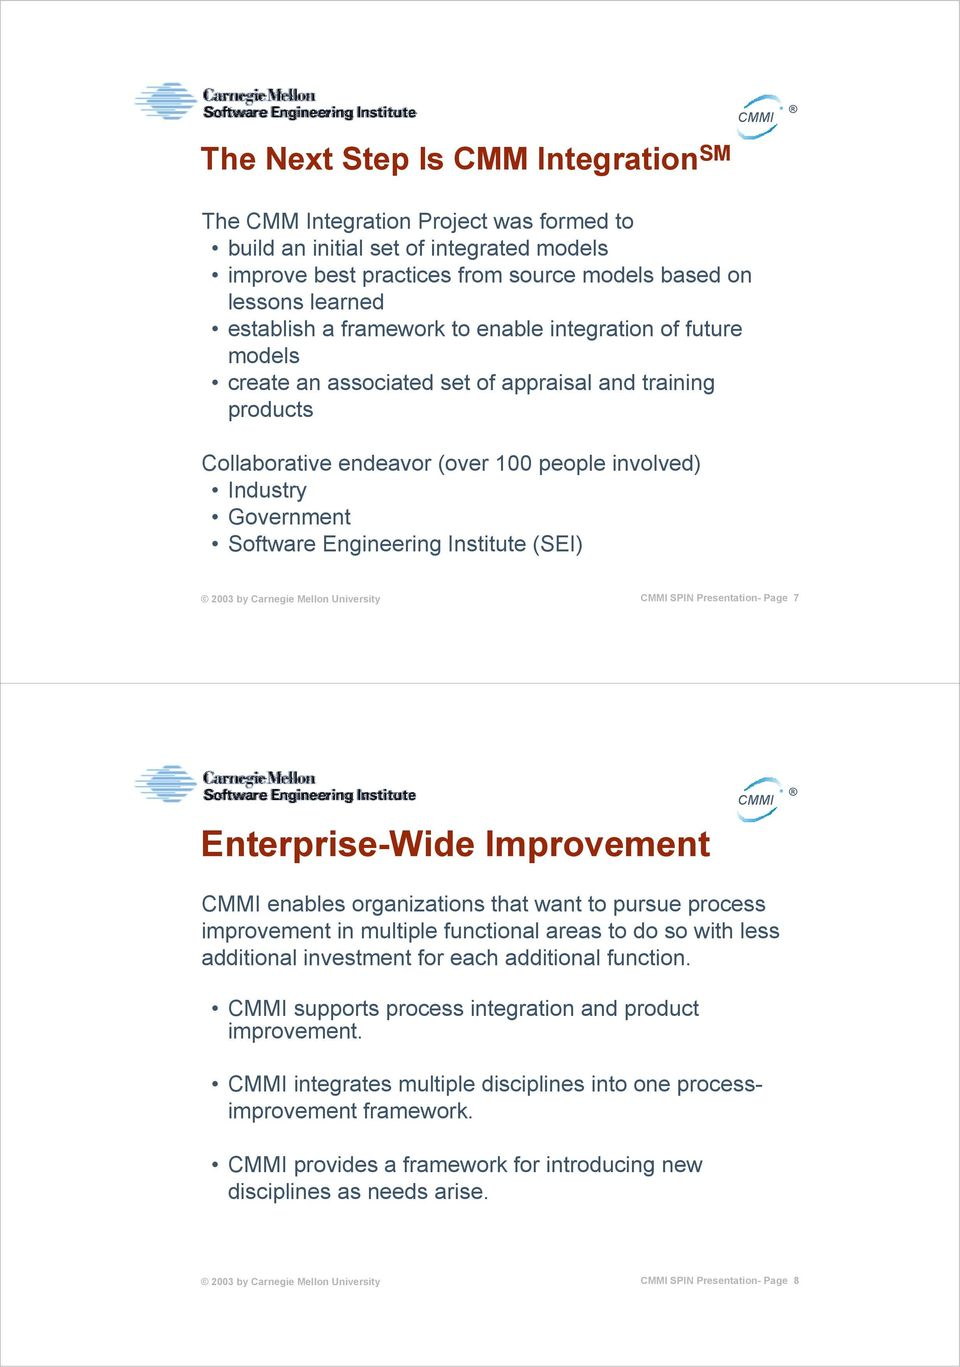 Institute (SEI) SPIN Presentation- Page 7 Enterprise-Wide Improvement enables organizations that want to pursue process improvement in multiple functional areas to do so with less additional